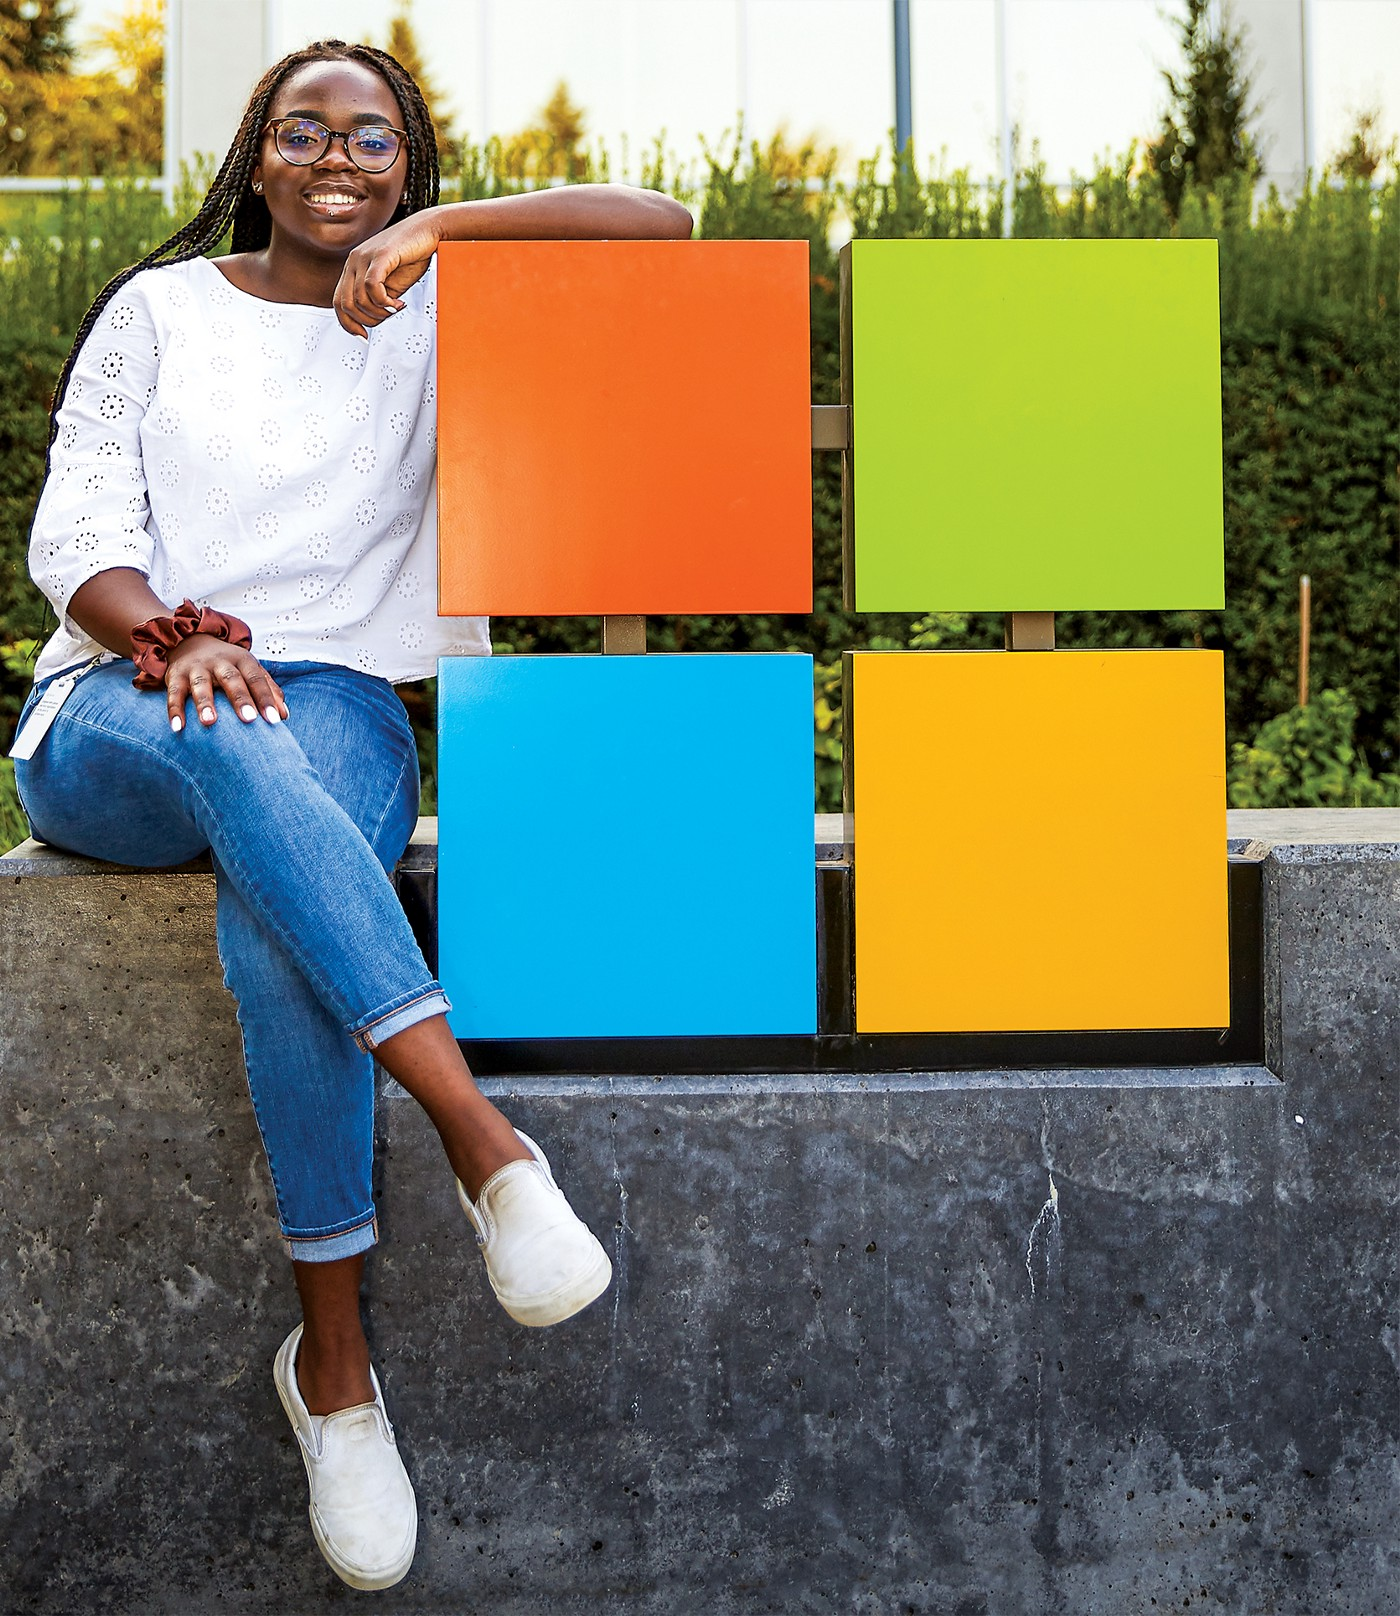 A young woman sits next to the iconic Microsoft logo and symbol.